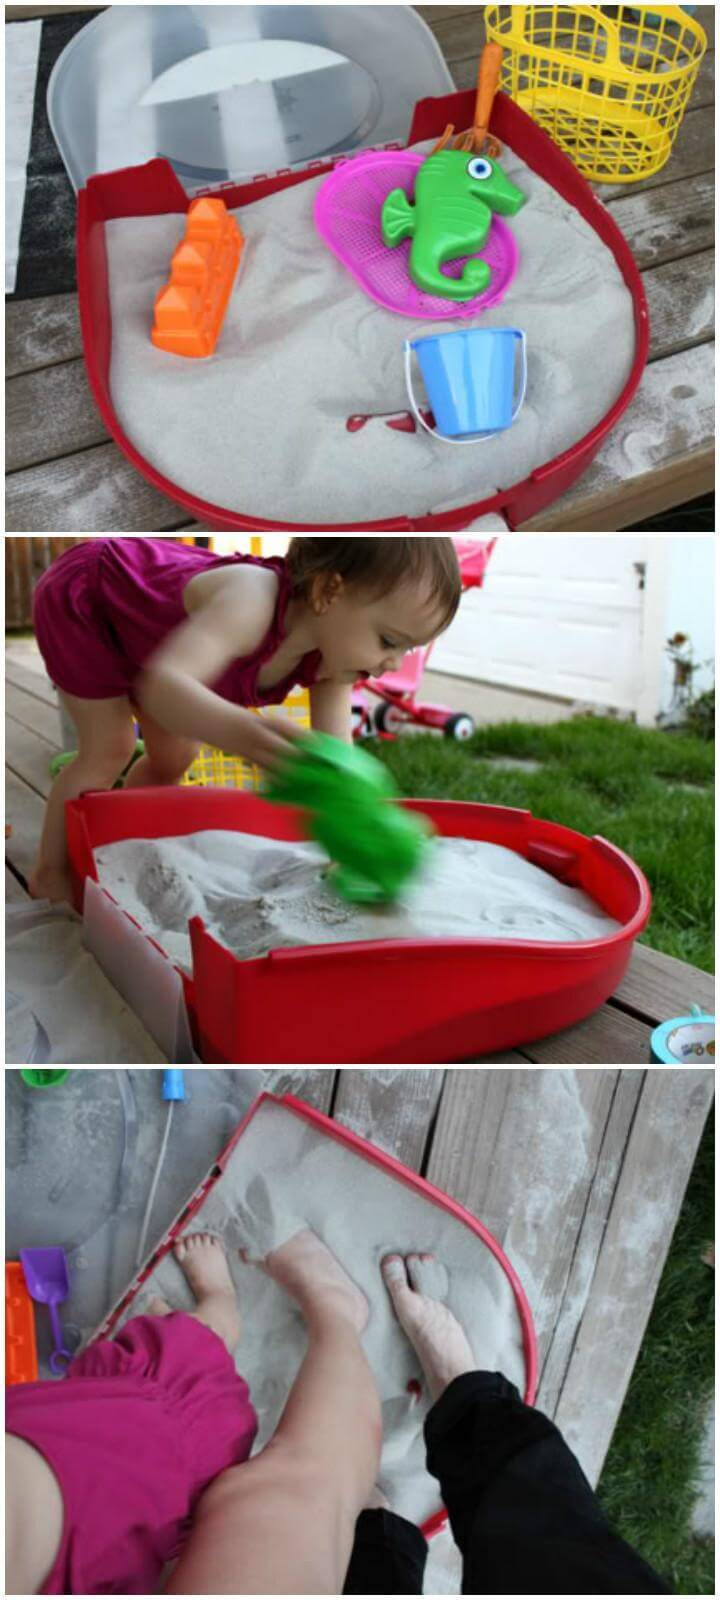 DIY 5$ Plastic Wreath Box into Sandbox